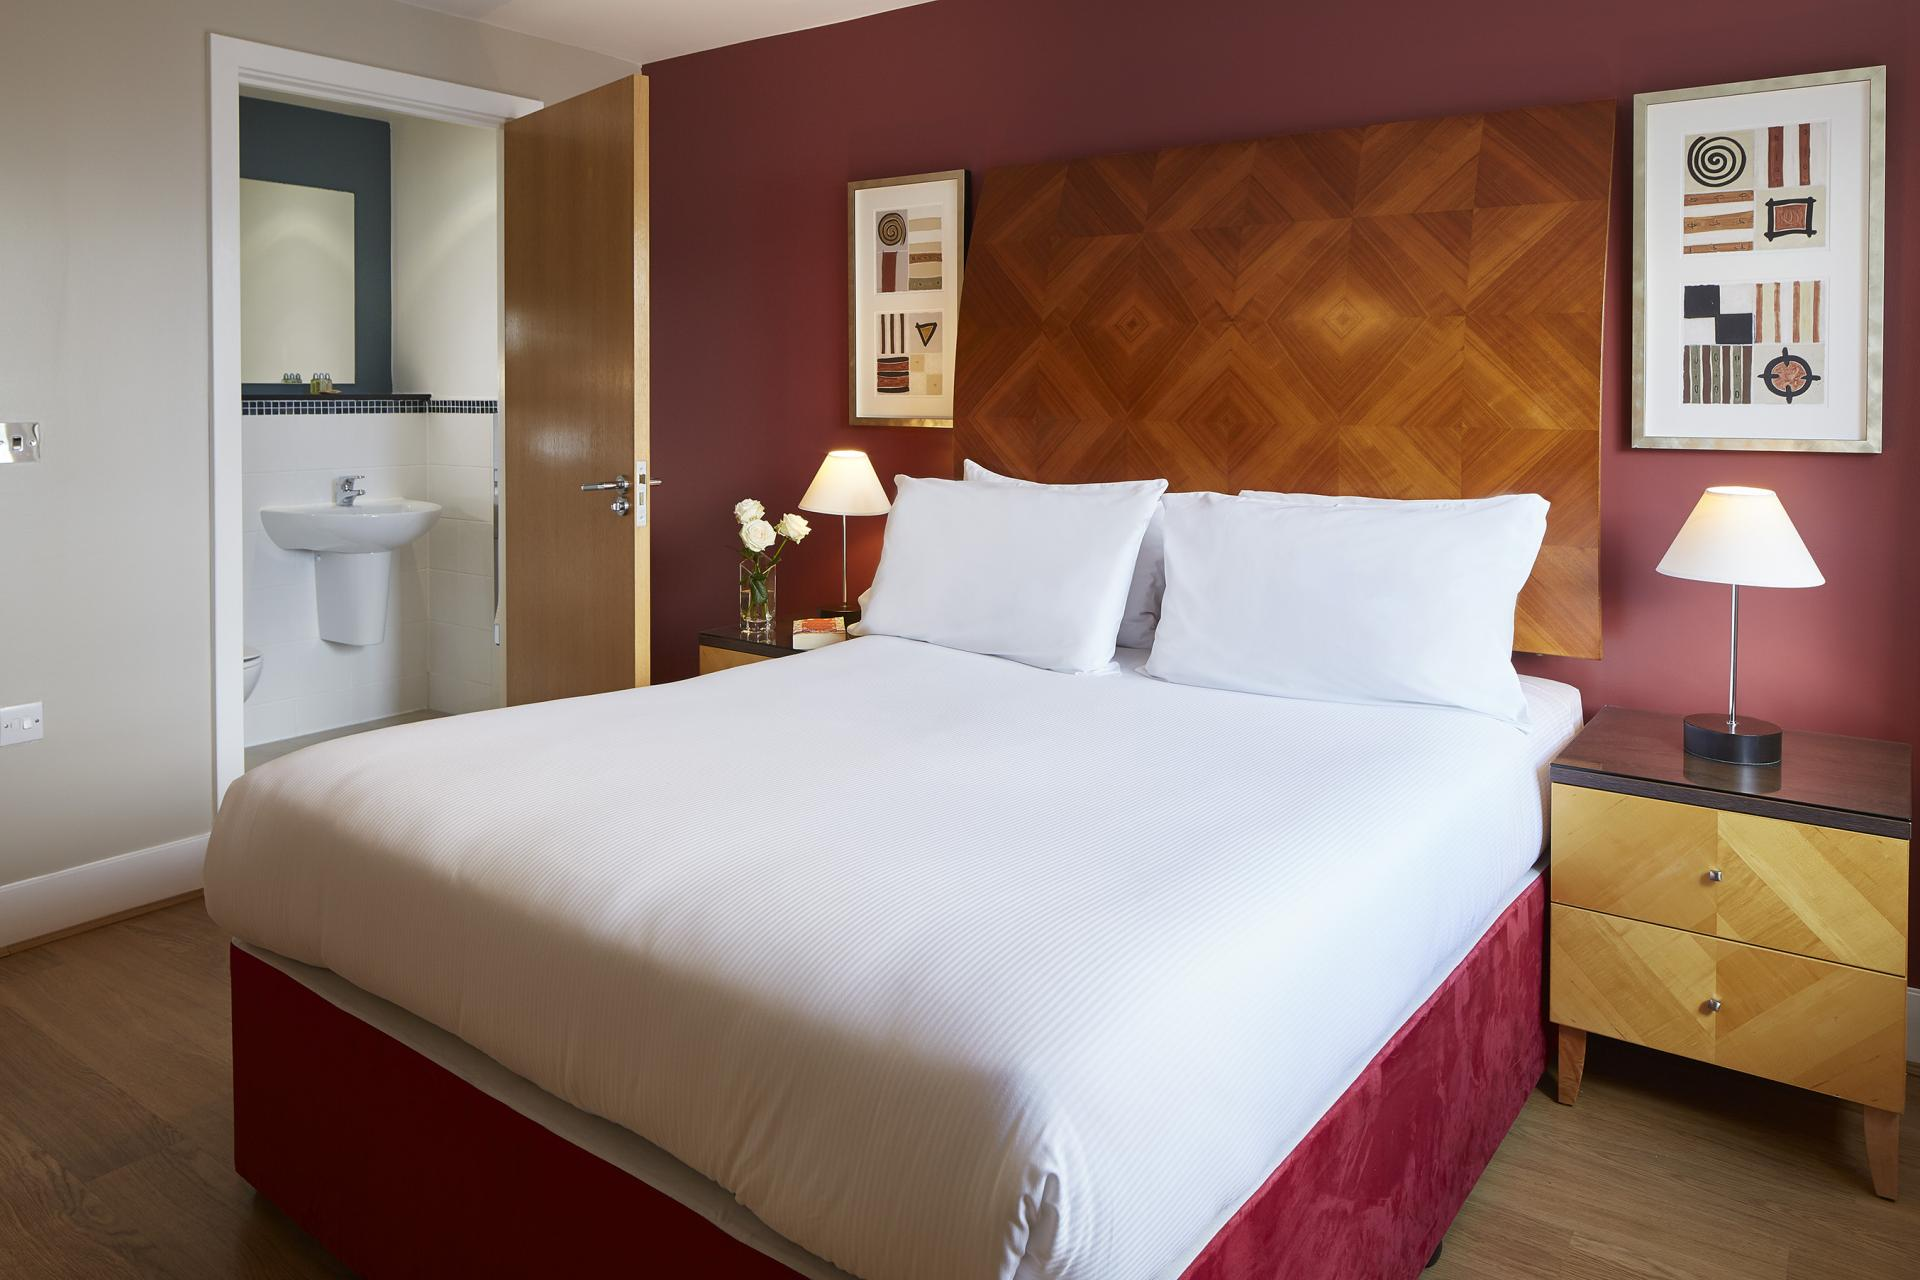 Bedroom at Limehouse Apartments, Limehouse, London - Citybase Apartments